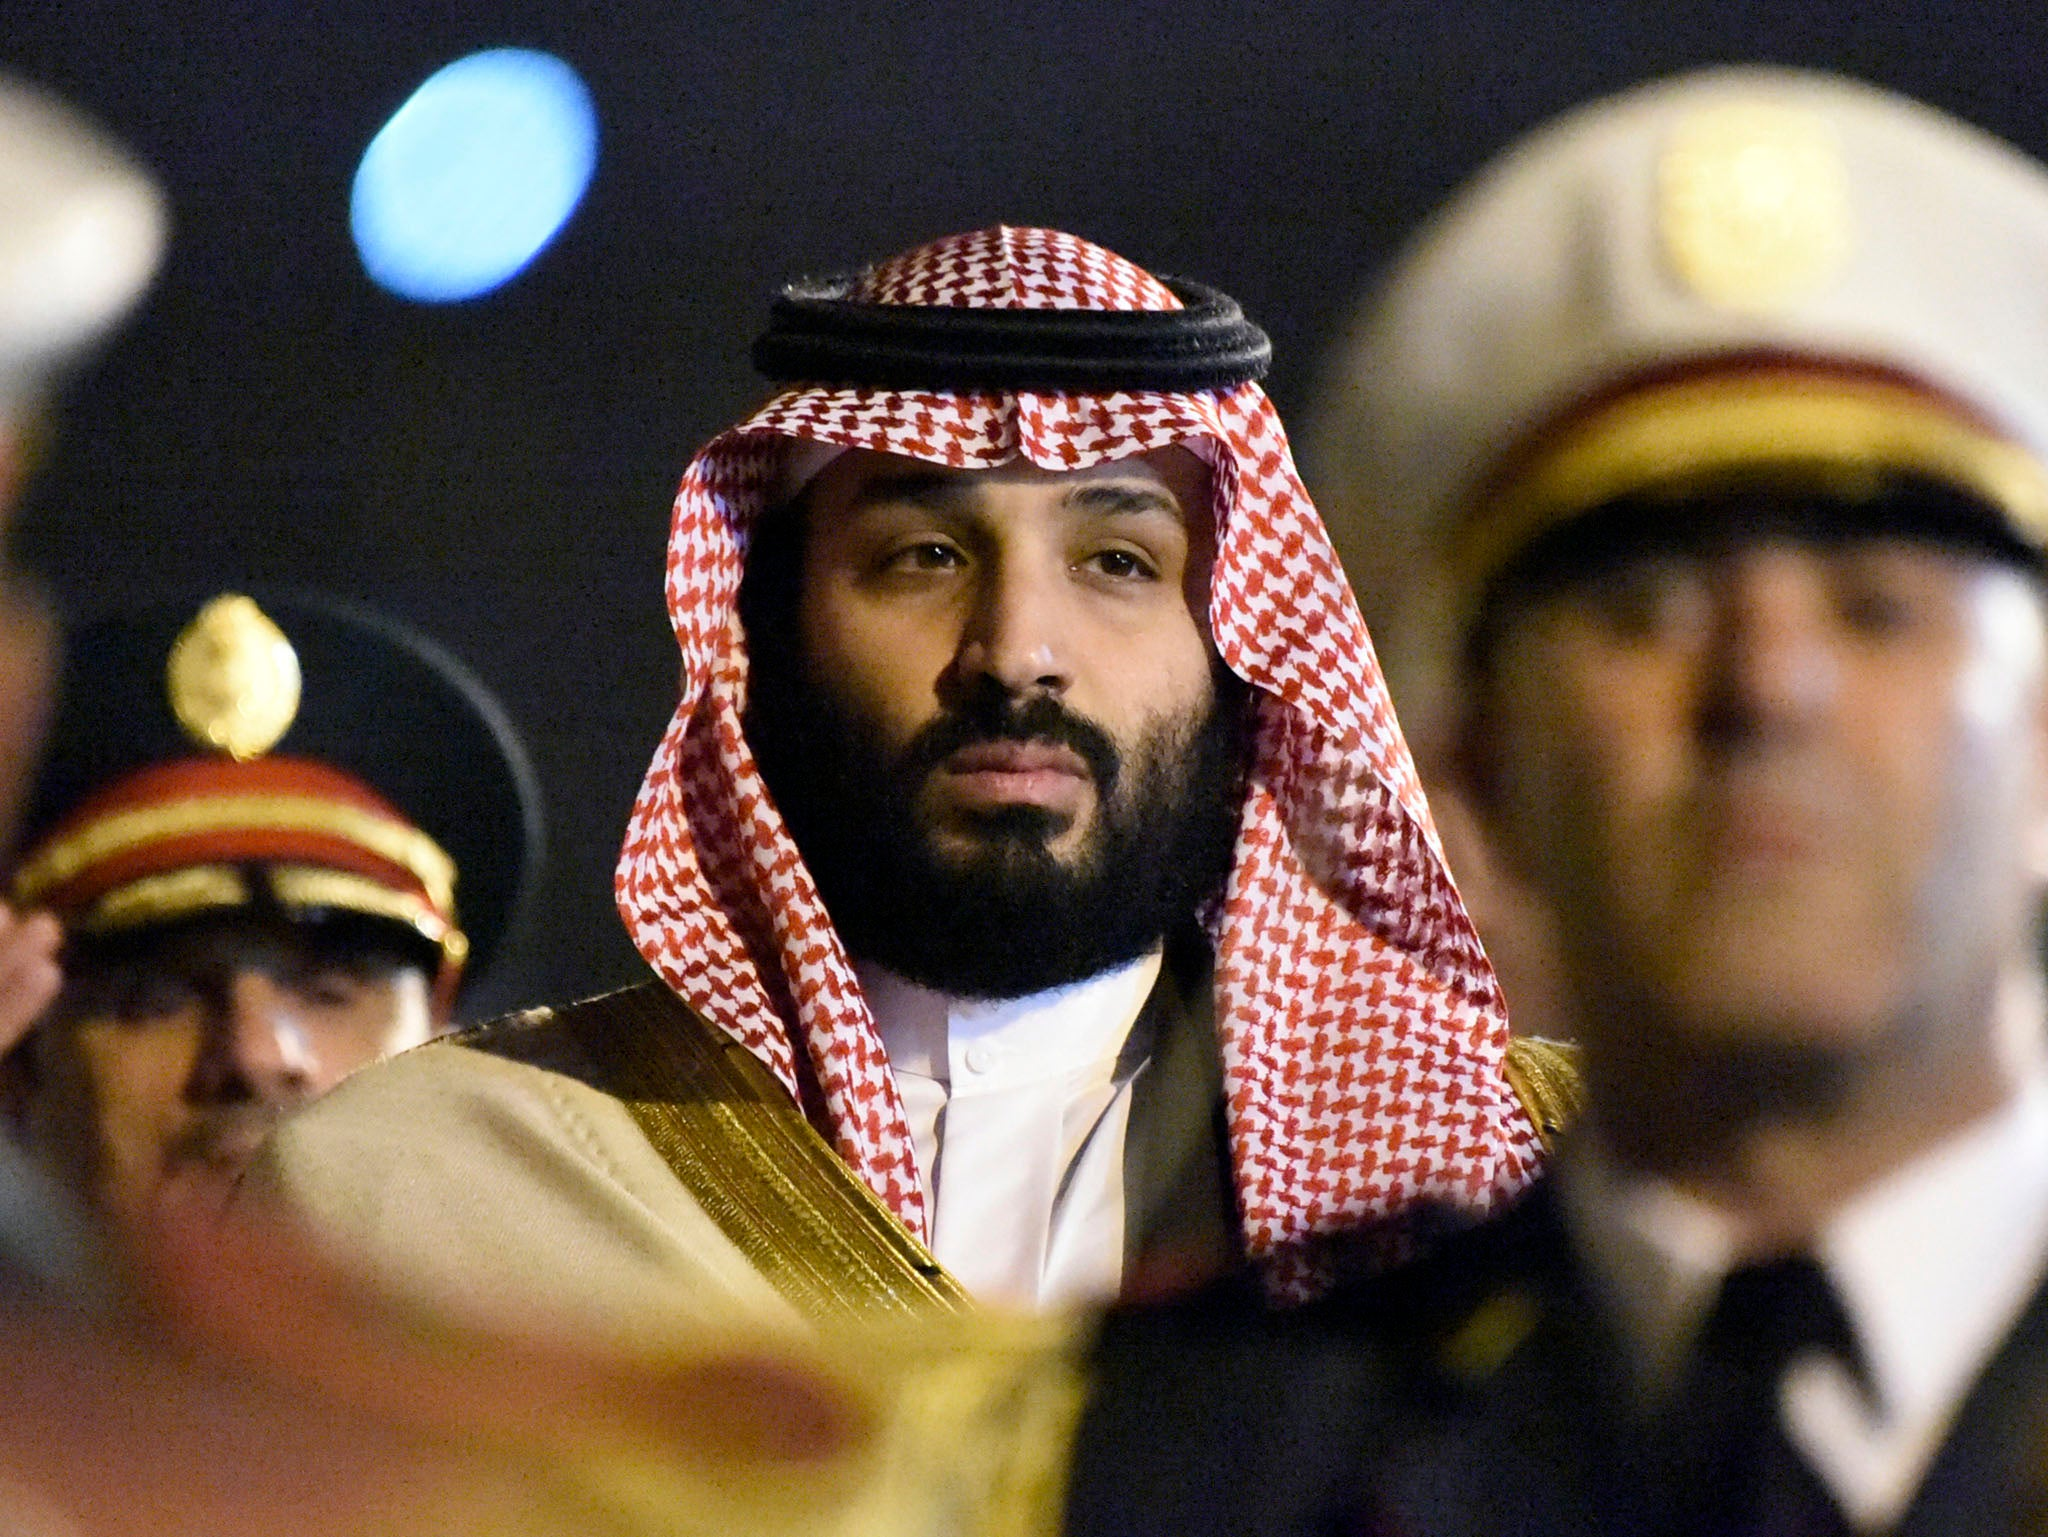 Saudi Arabia - latest news, breaking stories and comment - The